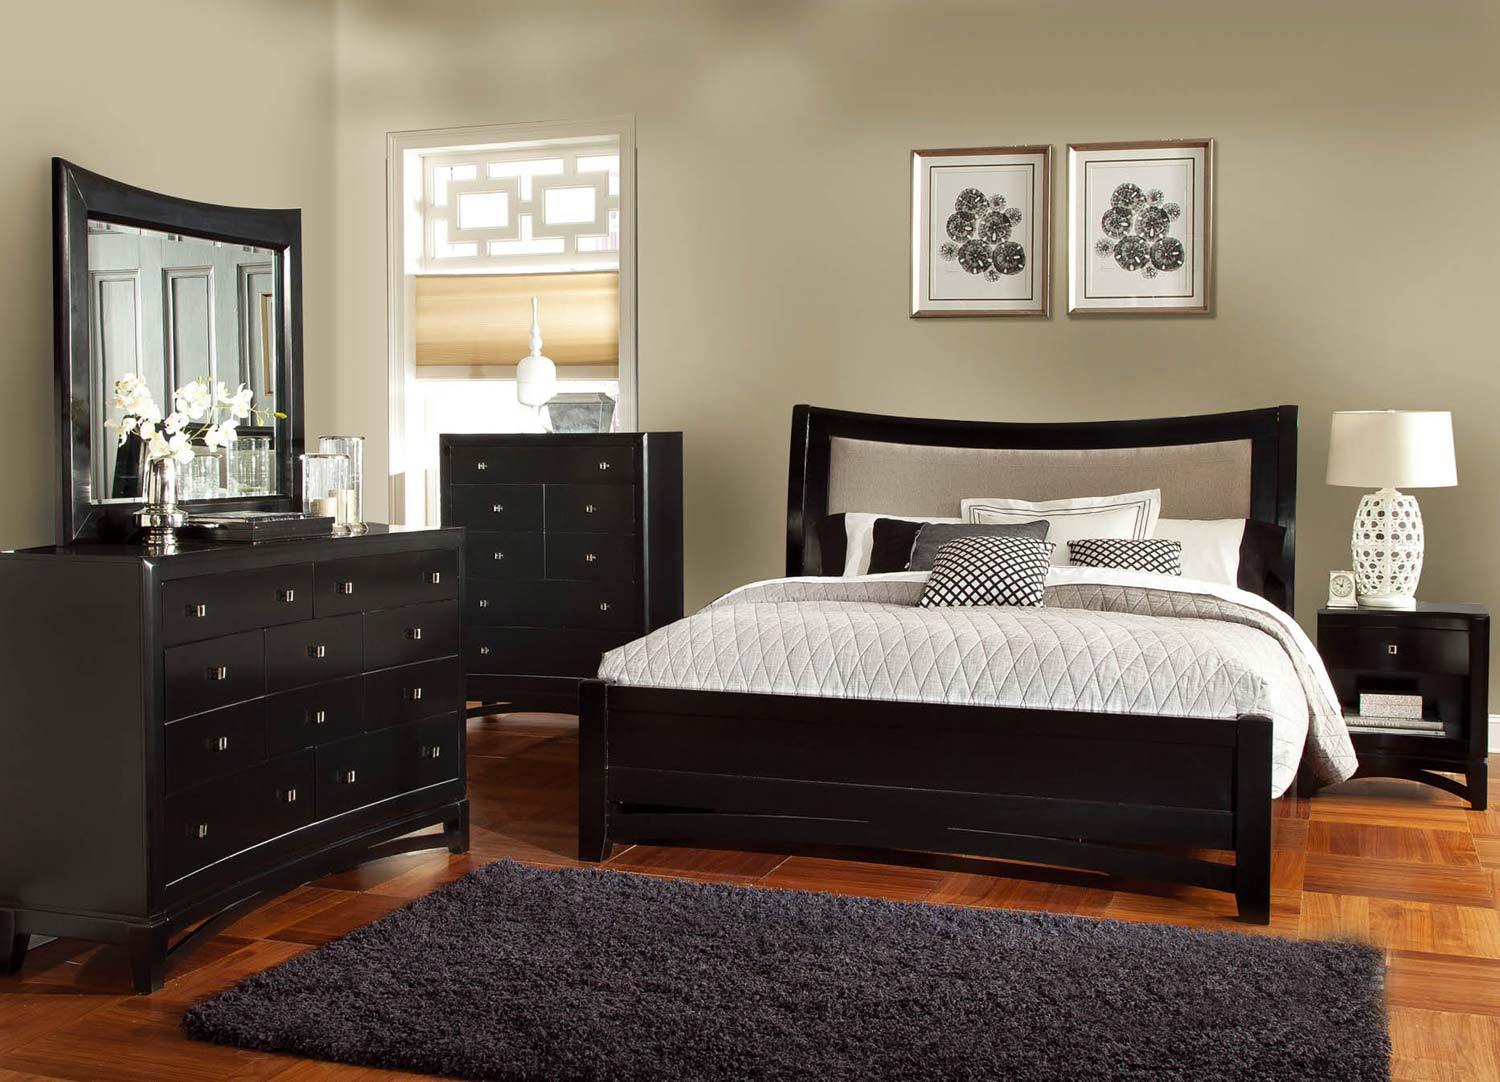 Global Furniture USA Madeline Bedroom Set - Black